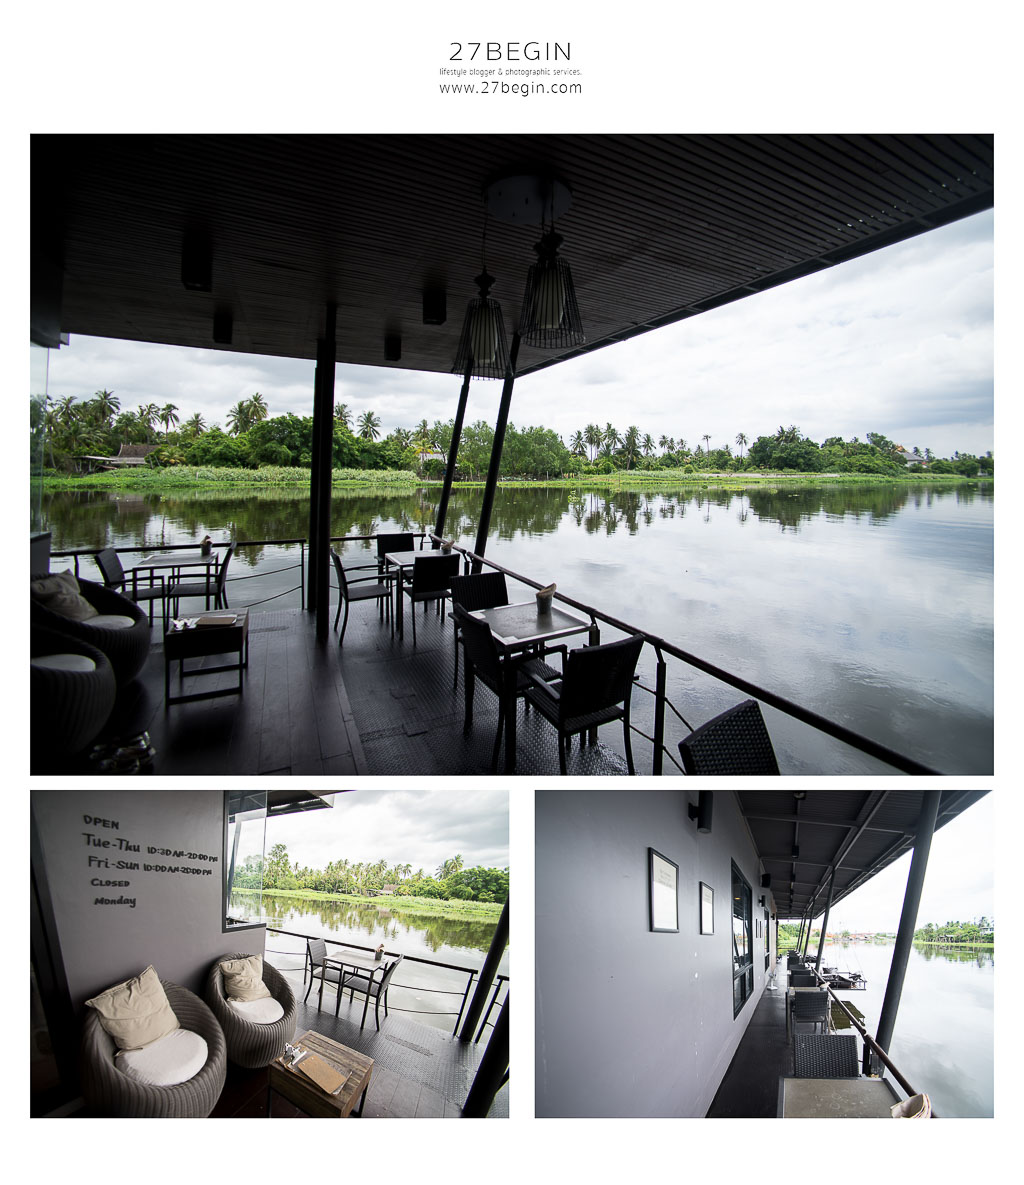 27begin_riverfloatingcafe5